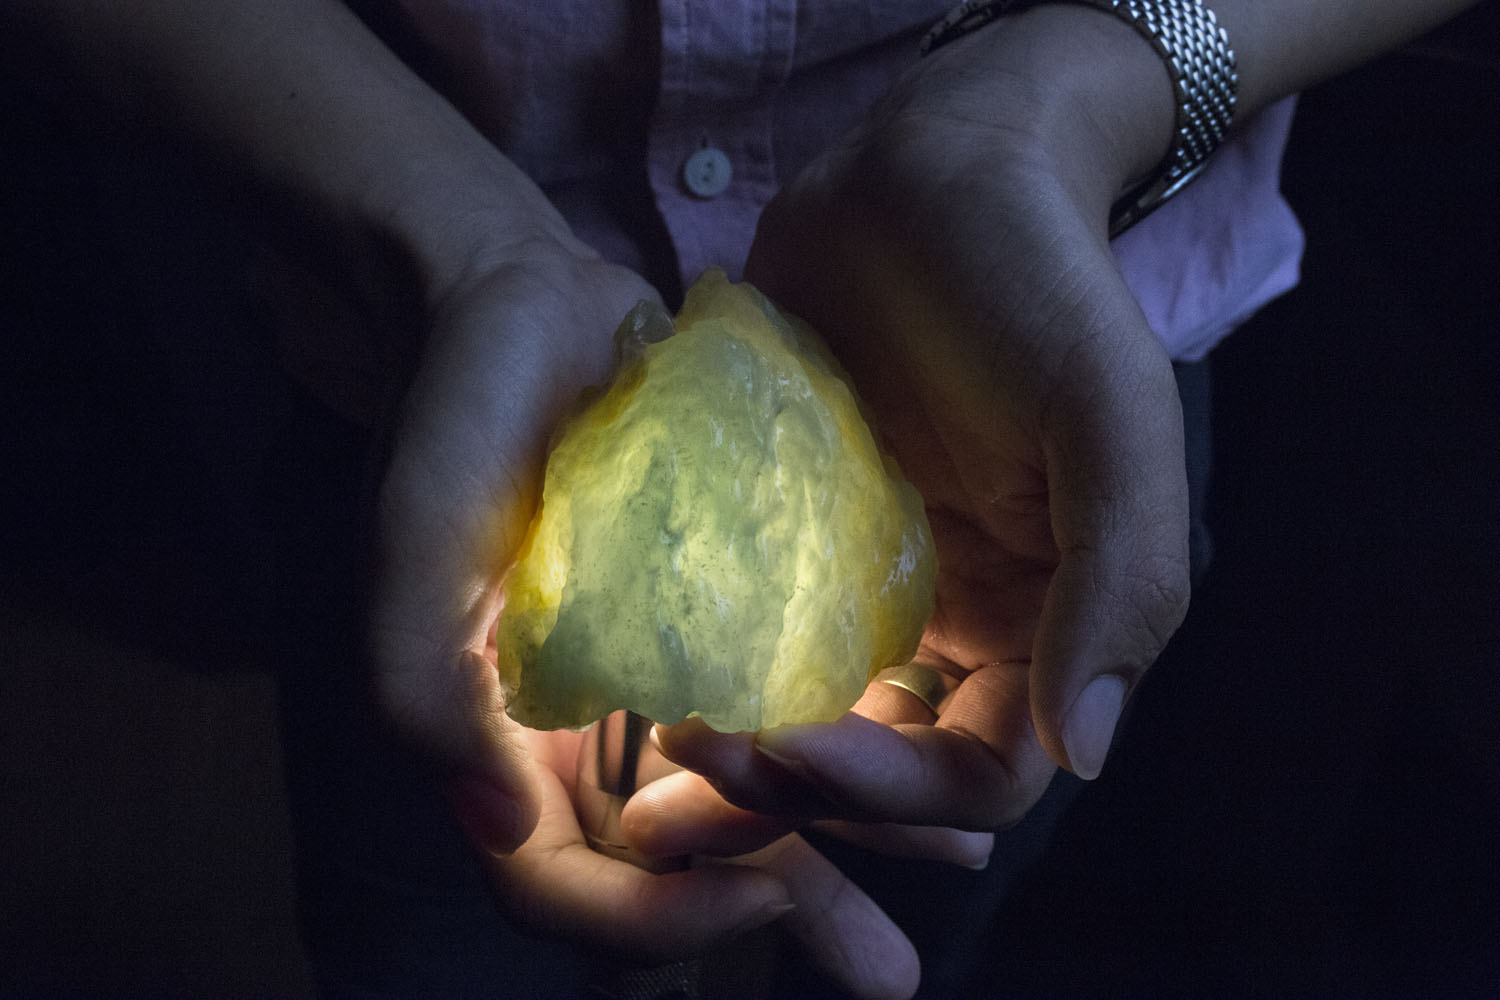 A trader shows a jade stone which he estimates to be worth at least forty or fifty thousands U.S. dollars in price in the black market, at a hotel room in Yin Jiang, China, June 17, 2015. According to the Myanmar jade traders of the black market, almost all the raw jade stones which are being traded in Yin Jiang are smuggled directly from the black market in Burma's Kachin state where the billion-dollar industry is based